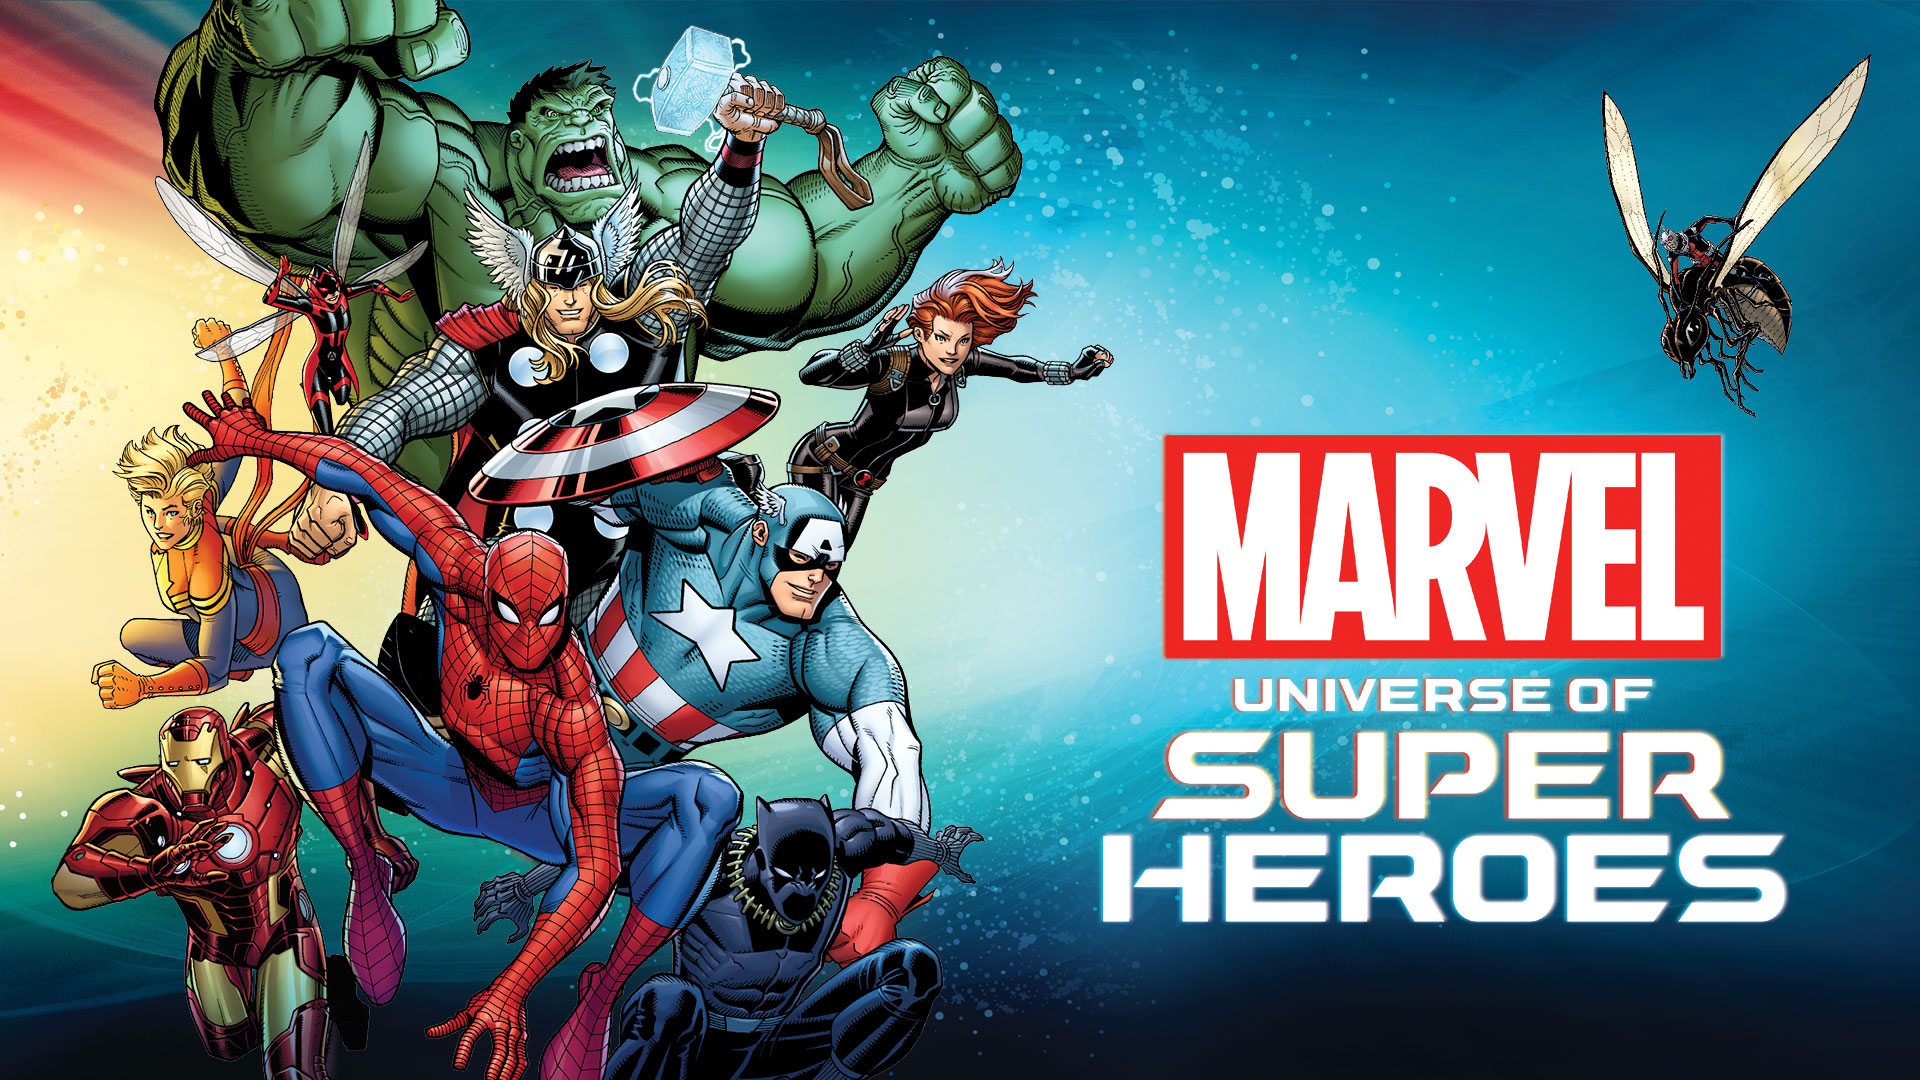 Marvel Universe of Super Heroes Graphic and Logo